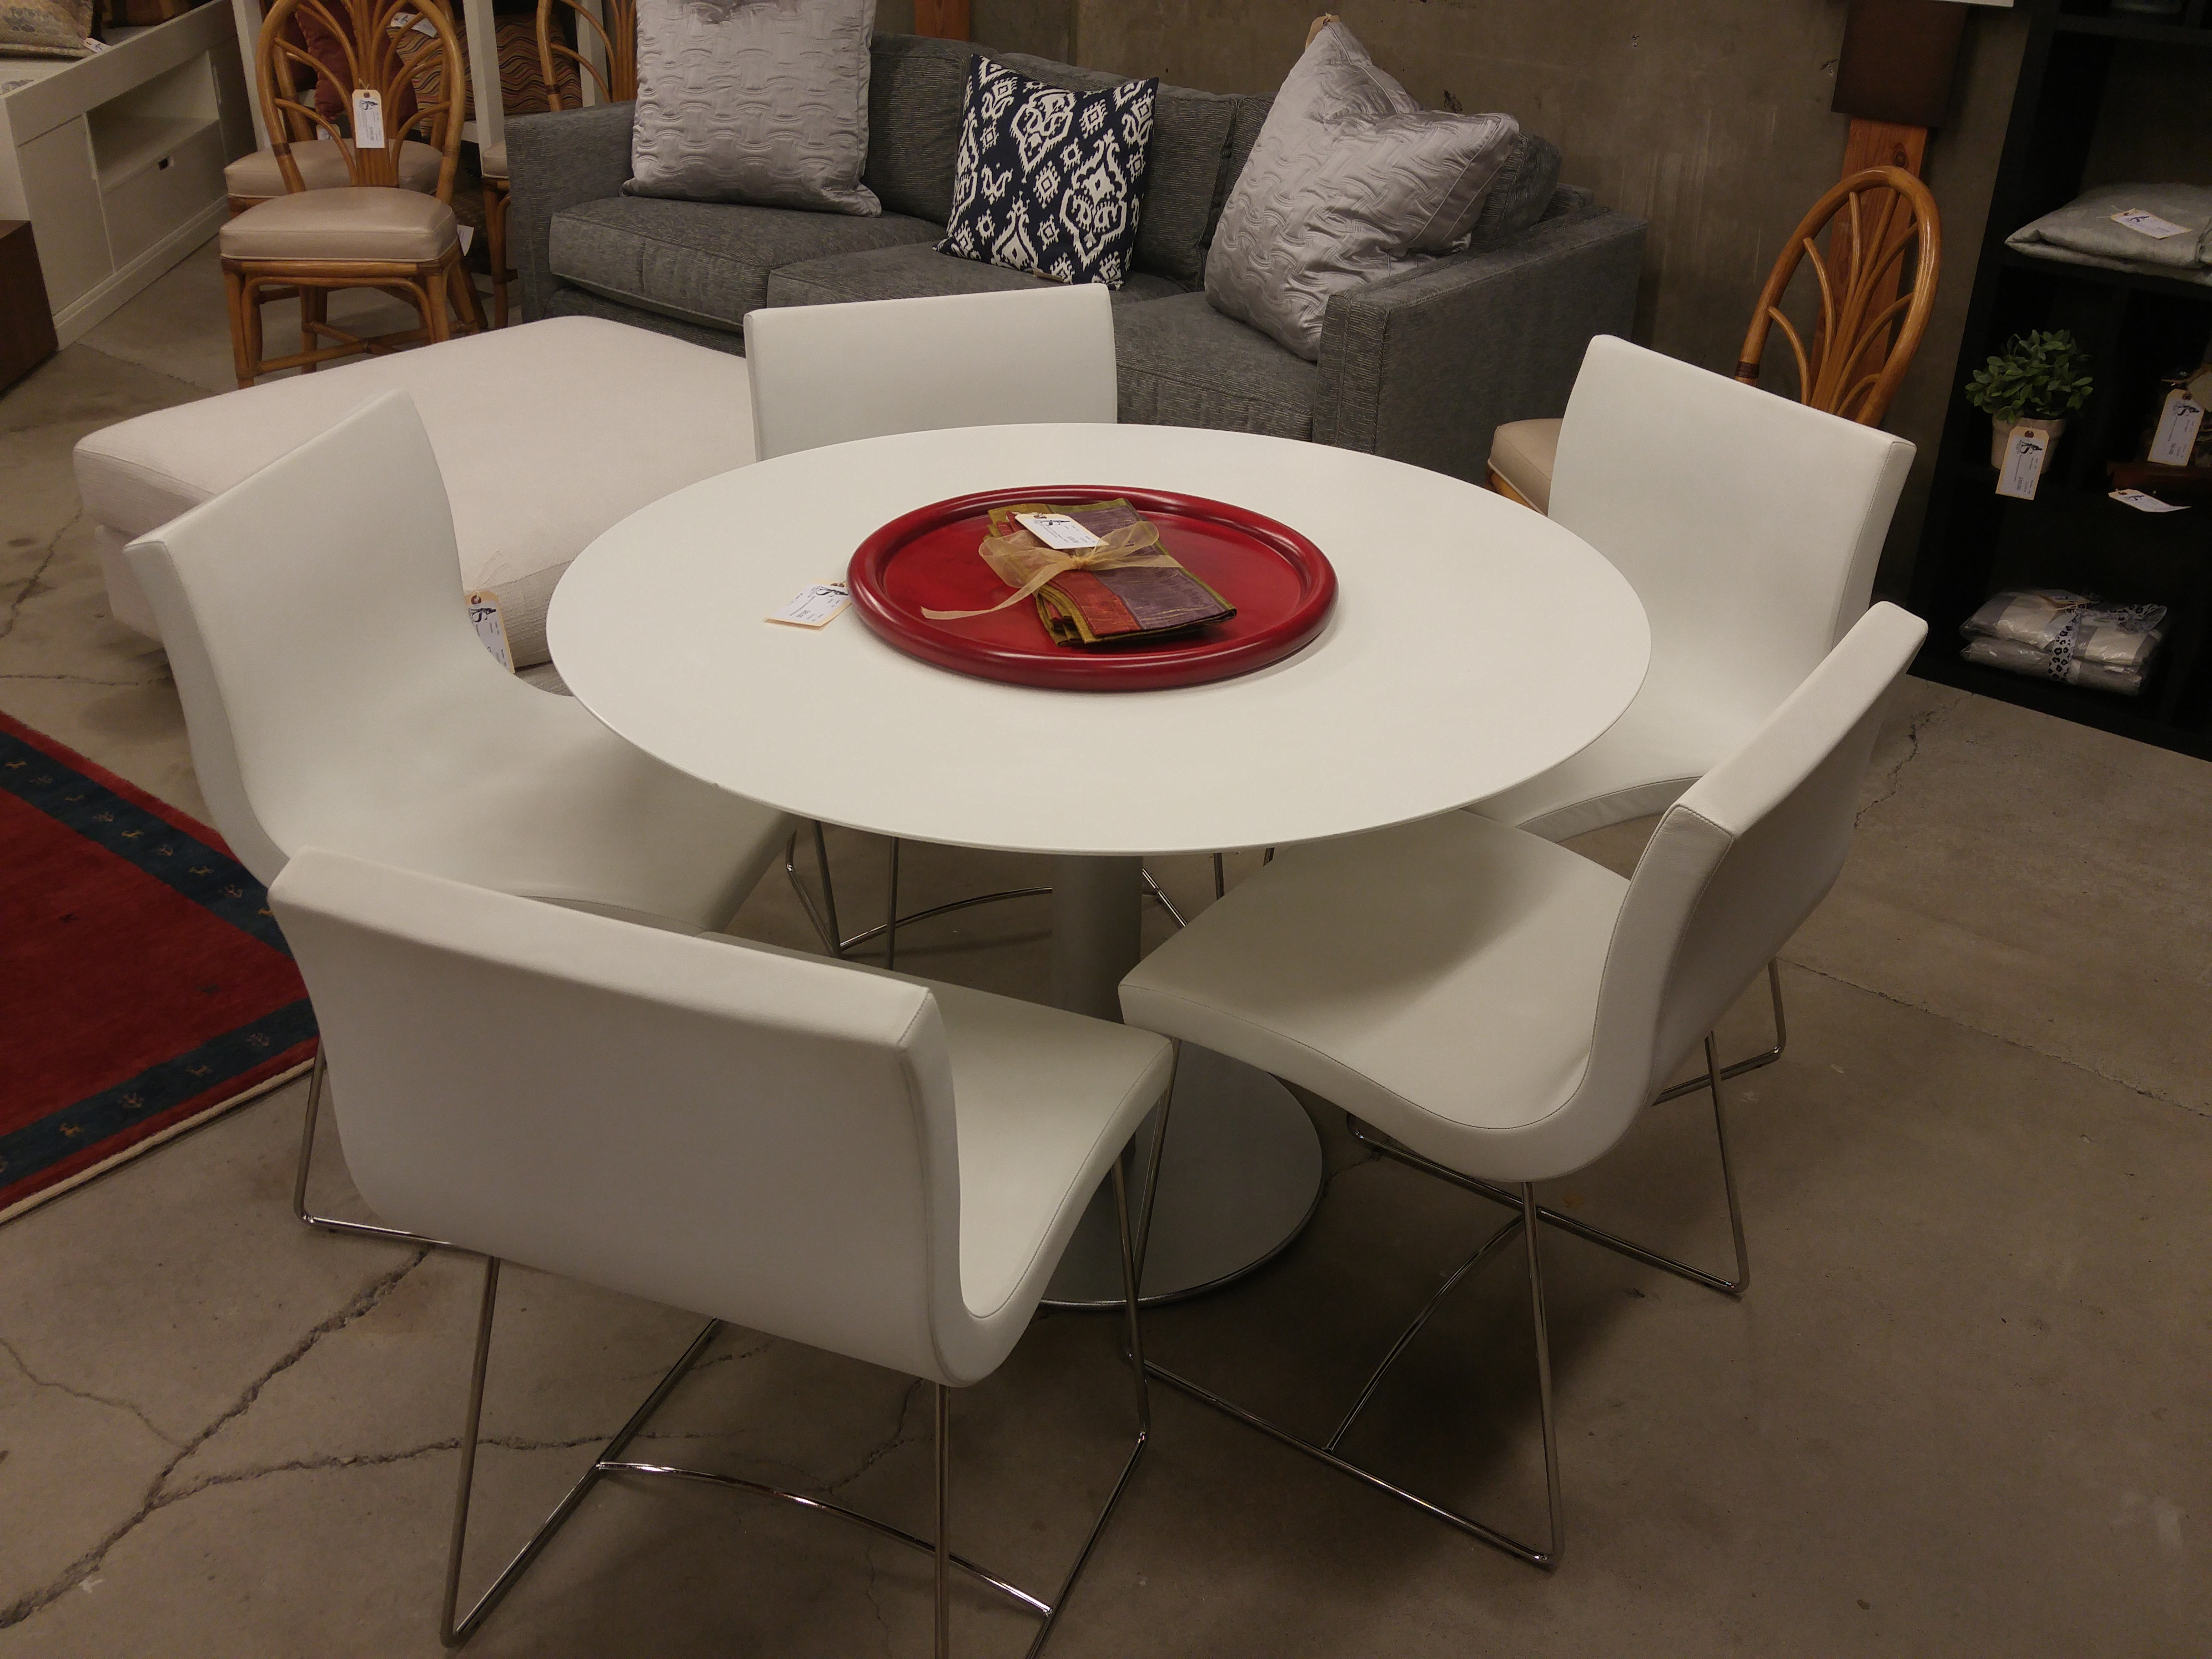 Jordan 23 designs 2 go furniture liening edge blog for Furniture 2 go